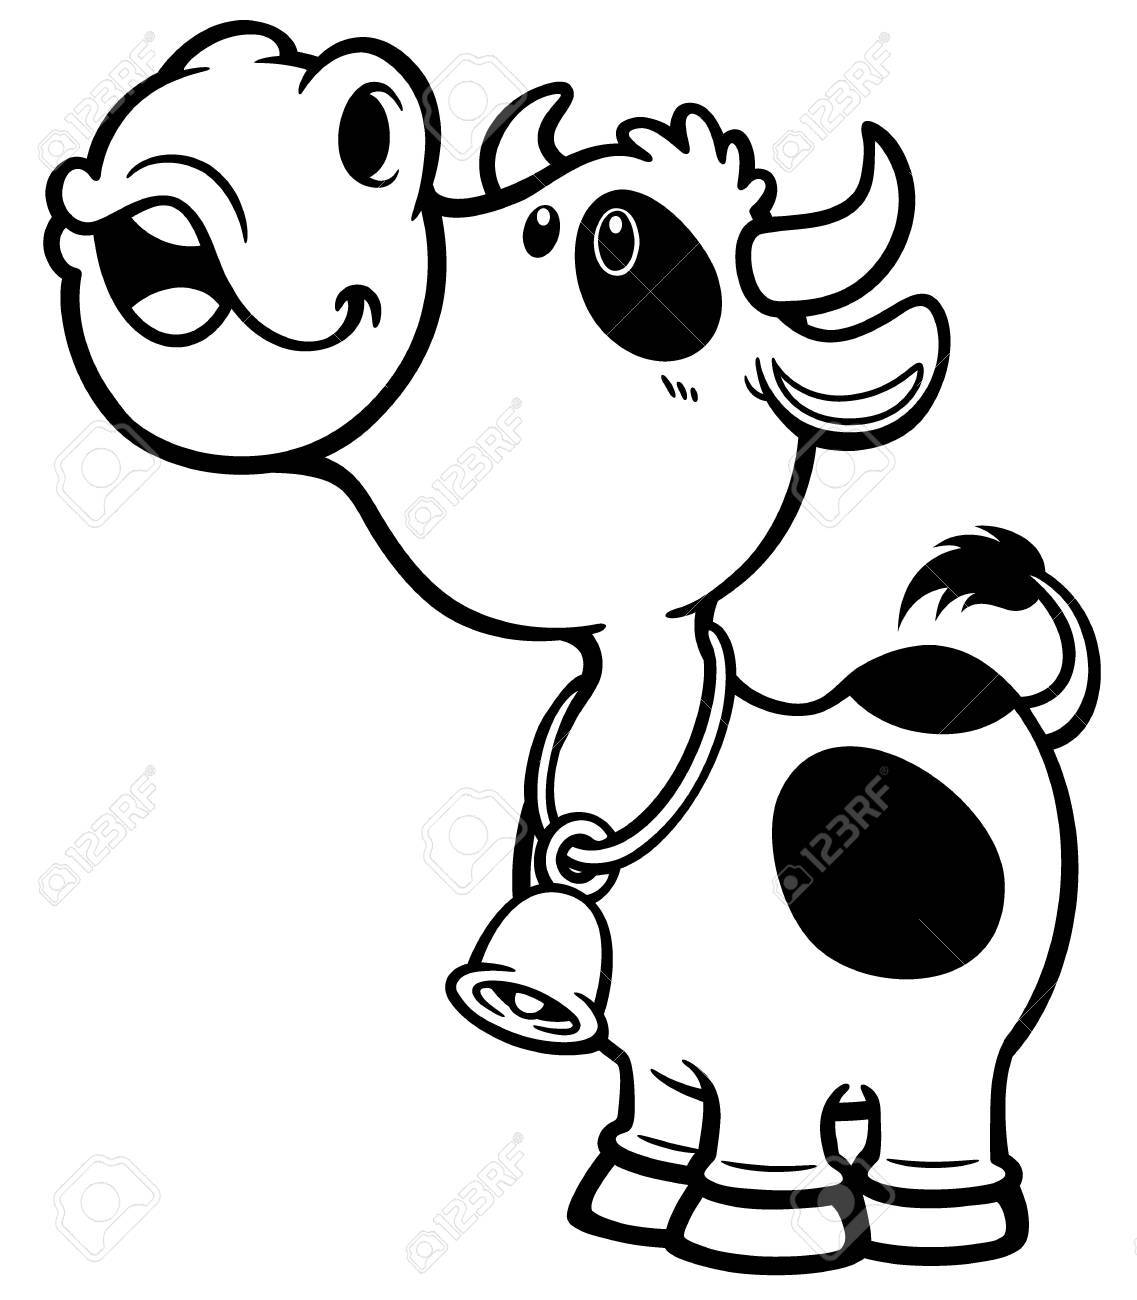 Vector Illustration Of Cartoon Cow - Coloring Book Royalty Free ...